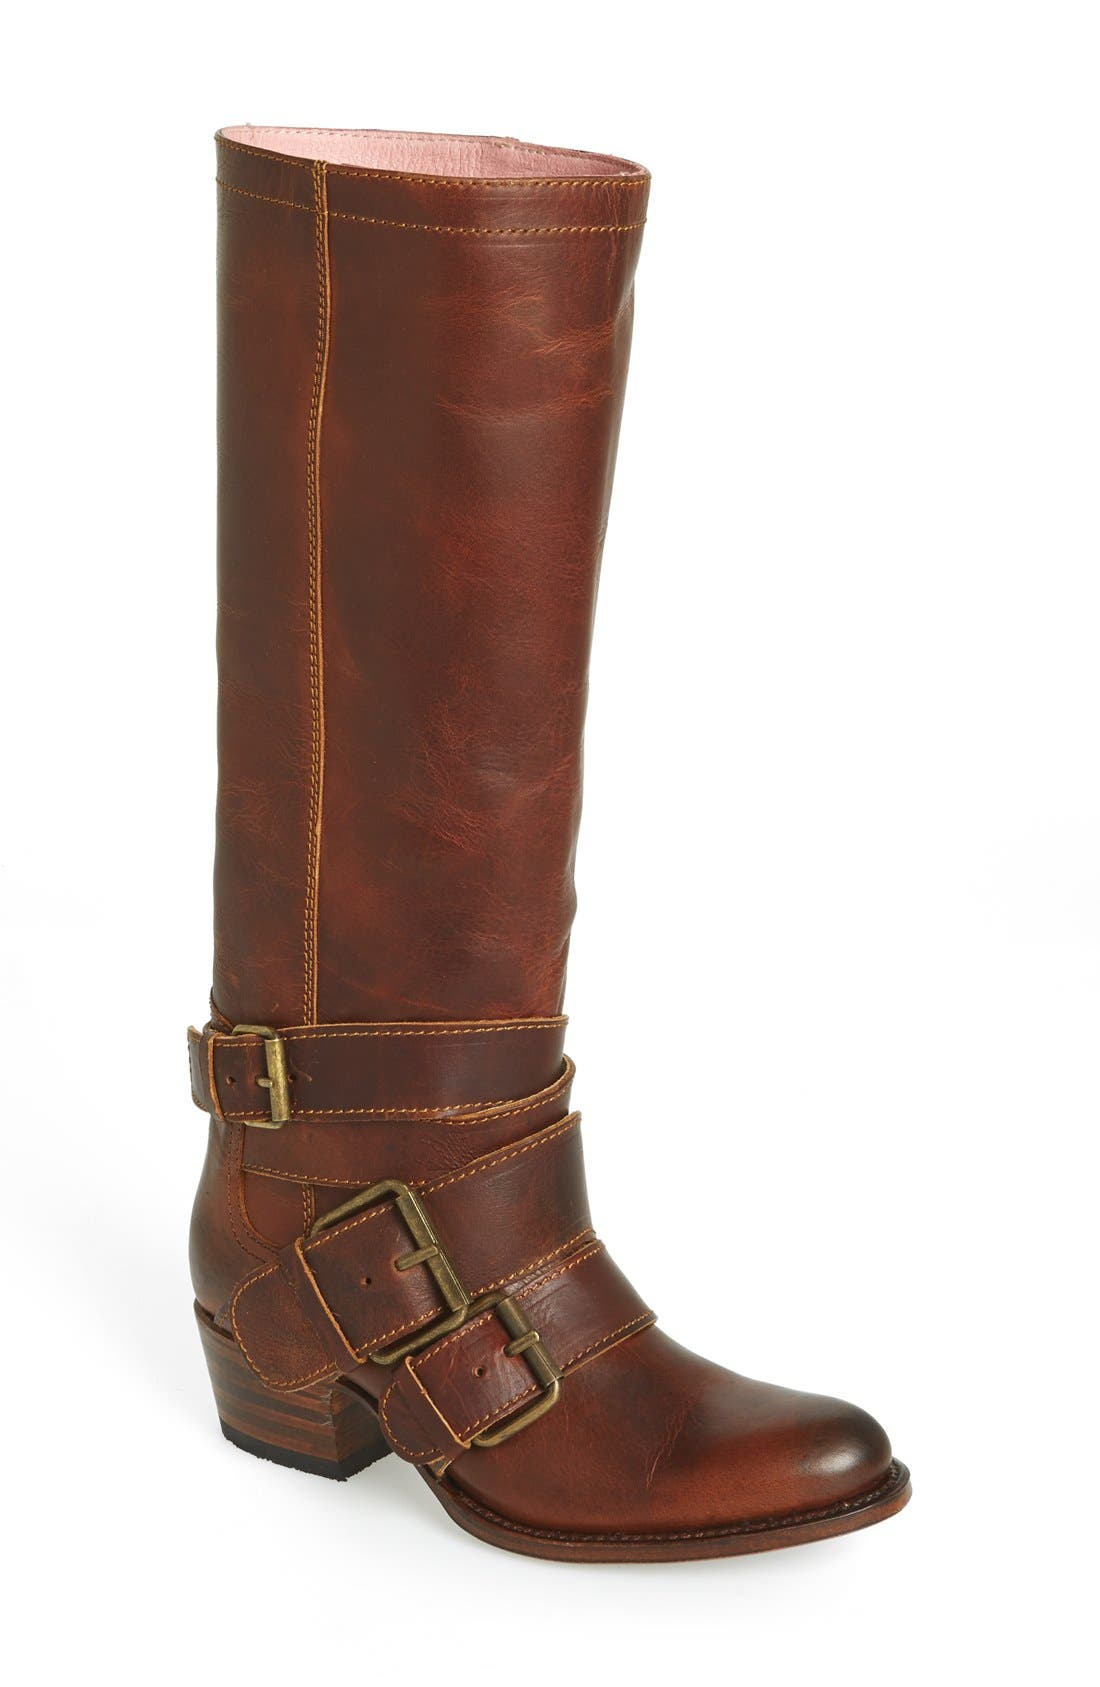 Alternate Image 1 Selected - Sendra 'Leone' Tall Boot (Women)